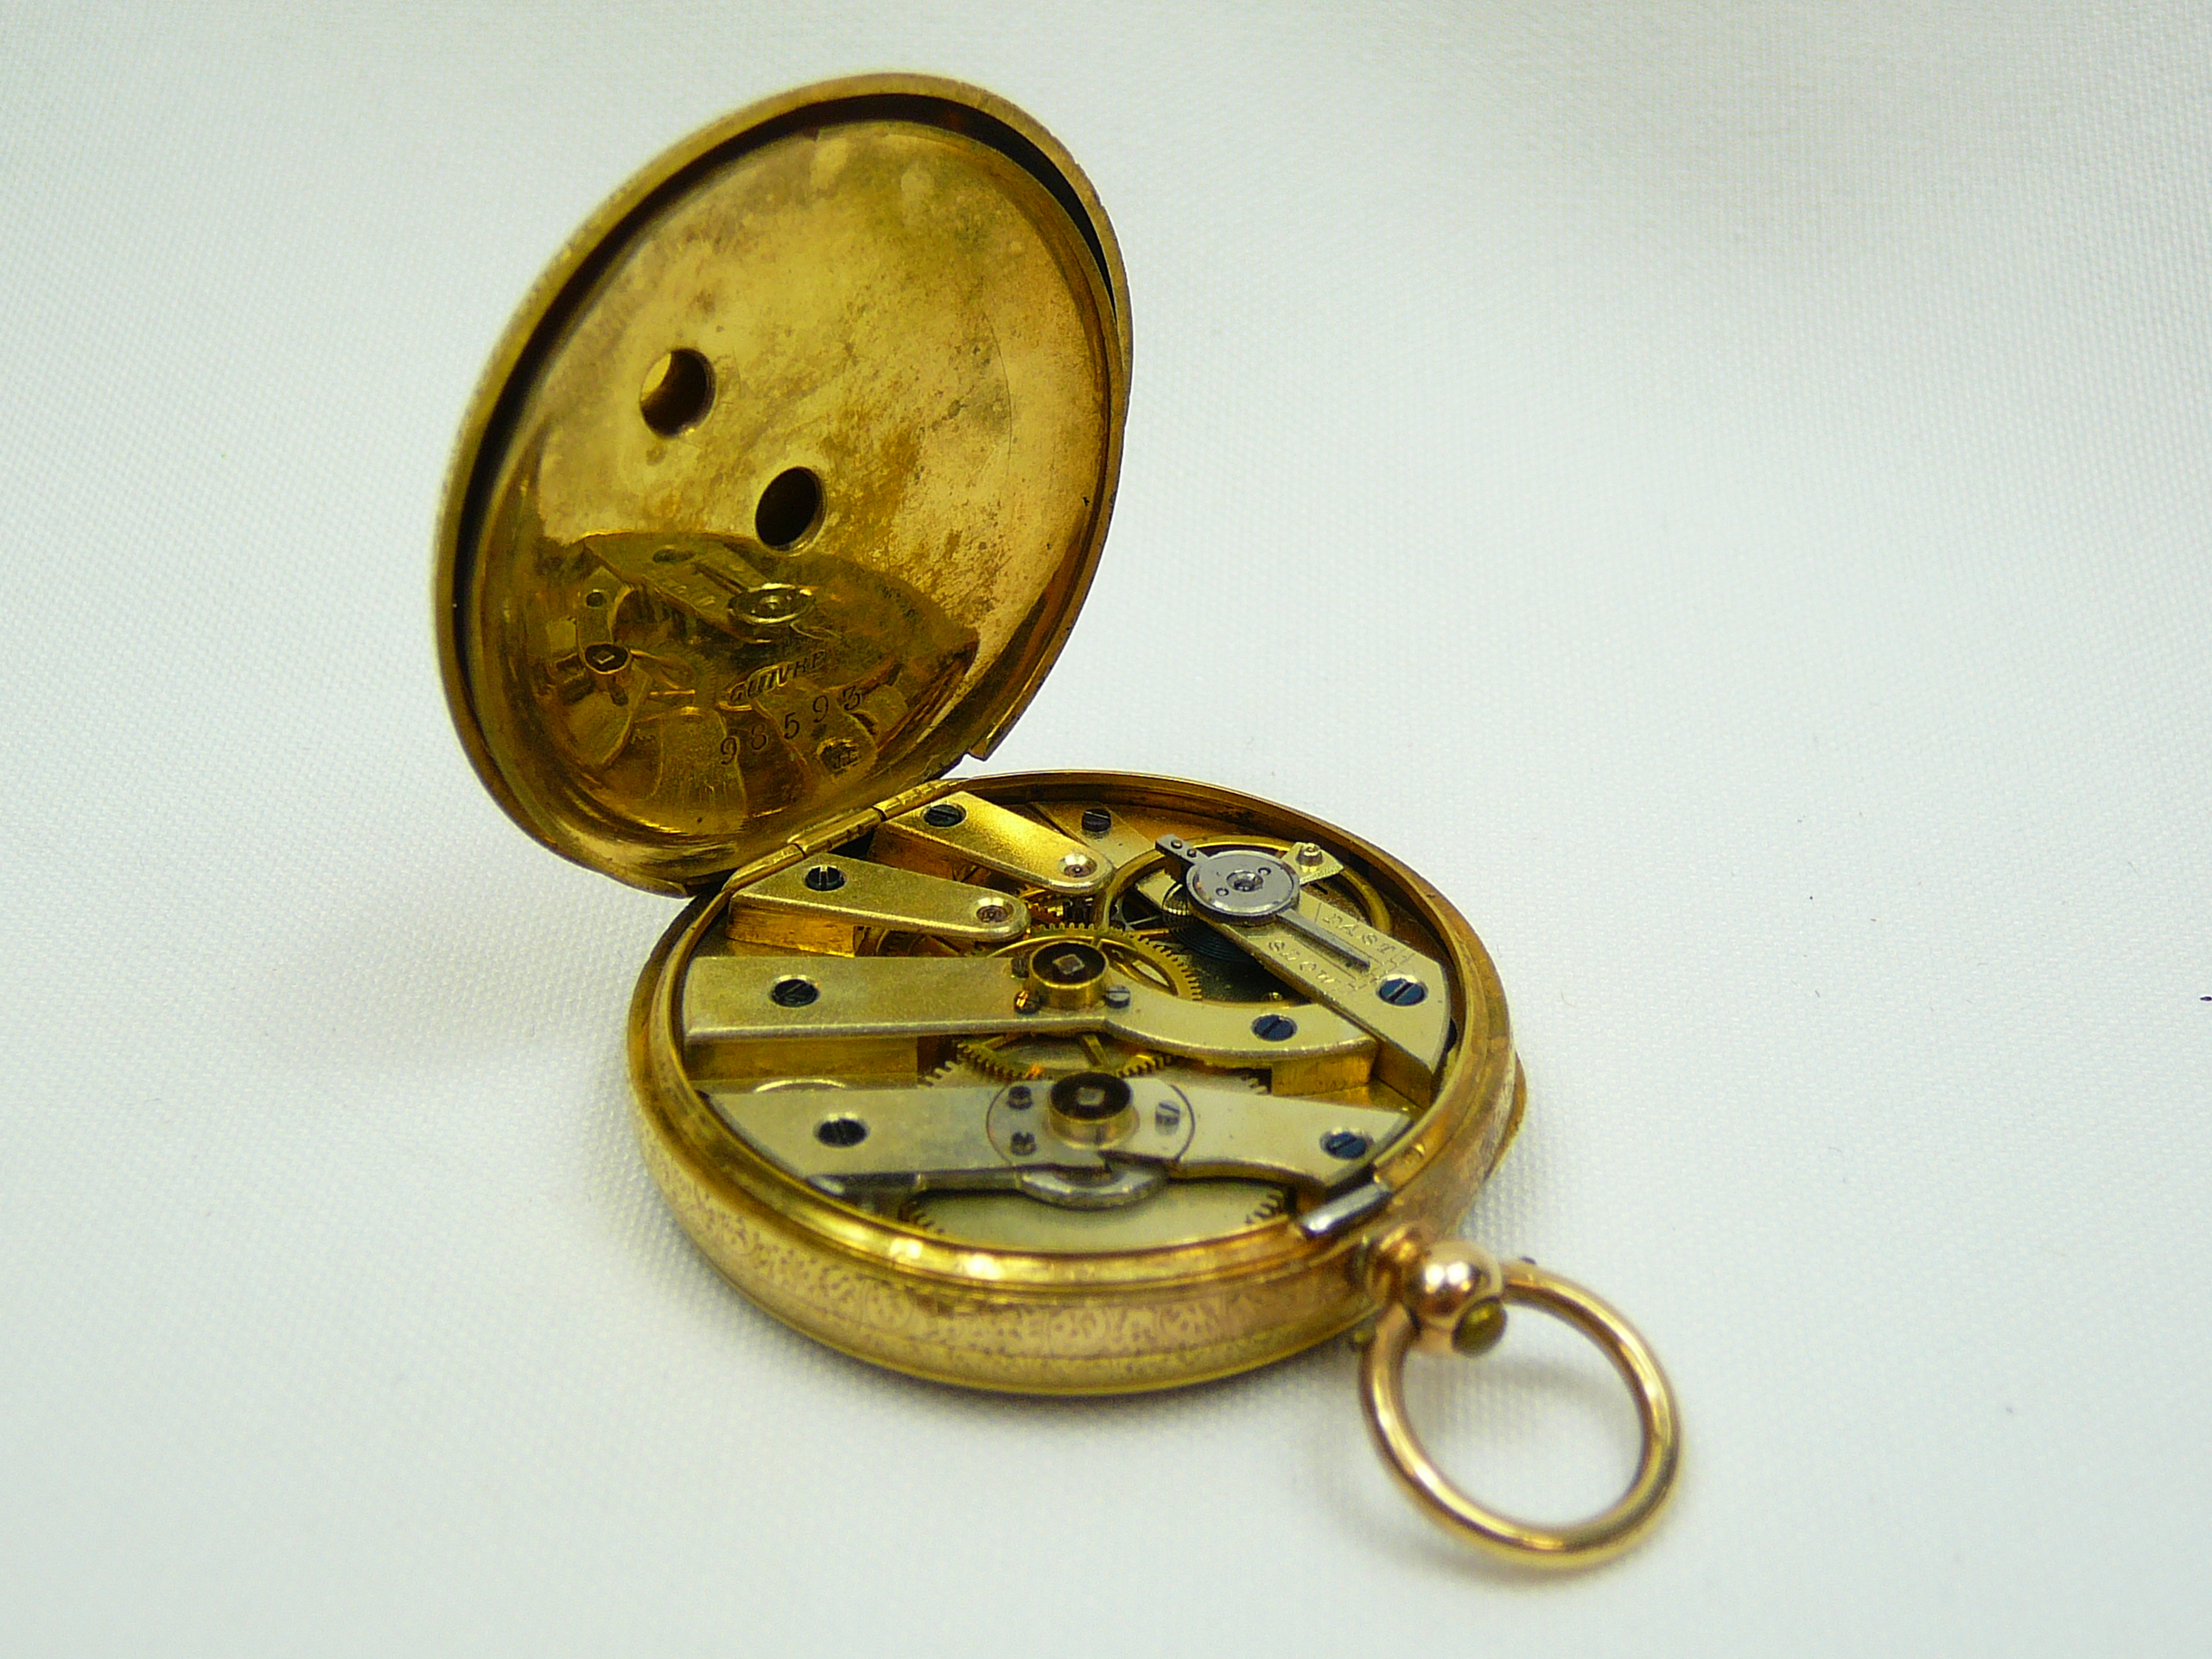 Ladies Antique Gold Fob Watch - Image 4 of 5